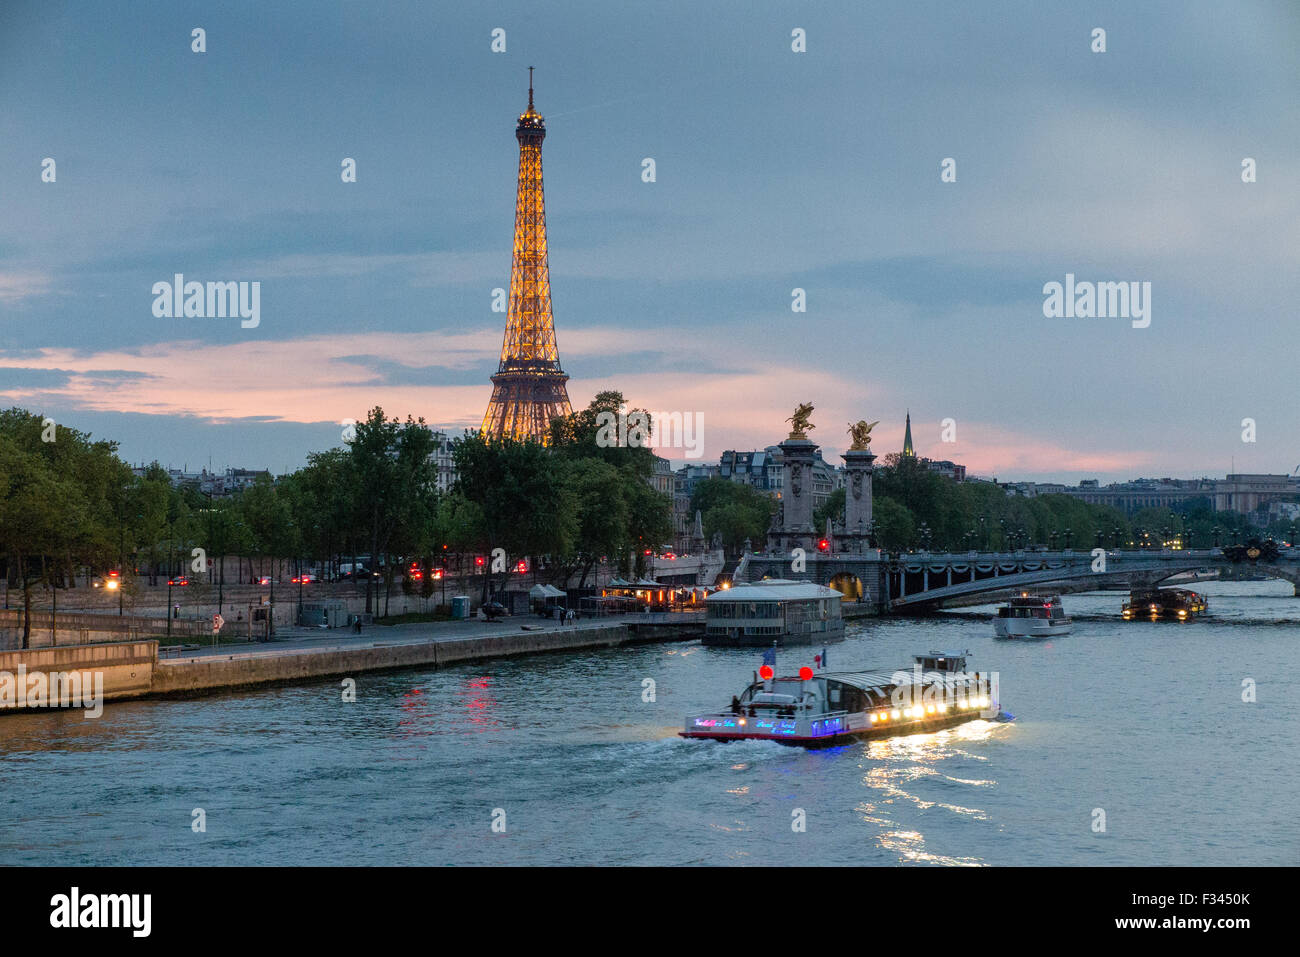 La Tour Eiffel et de la Seine, Paris, France Photo Stock